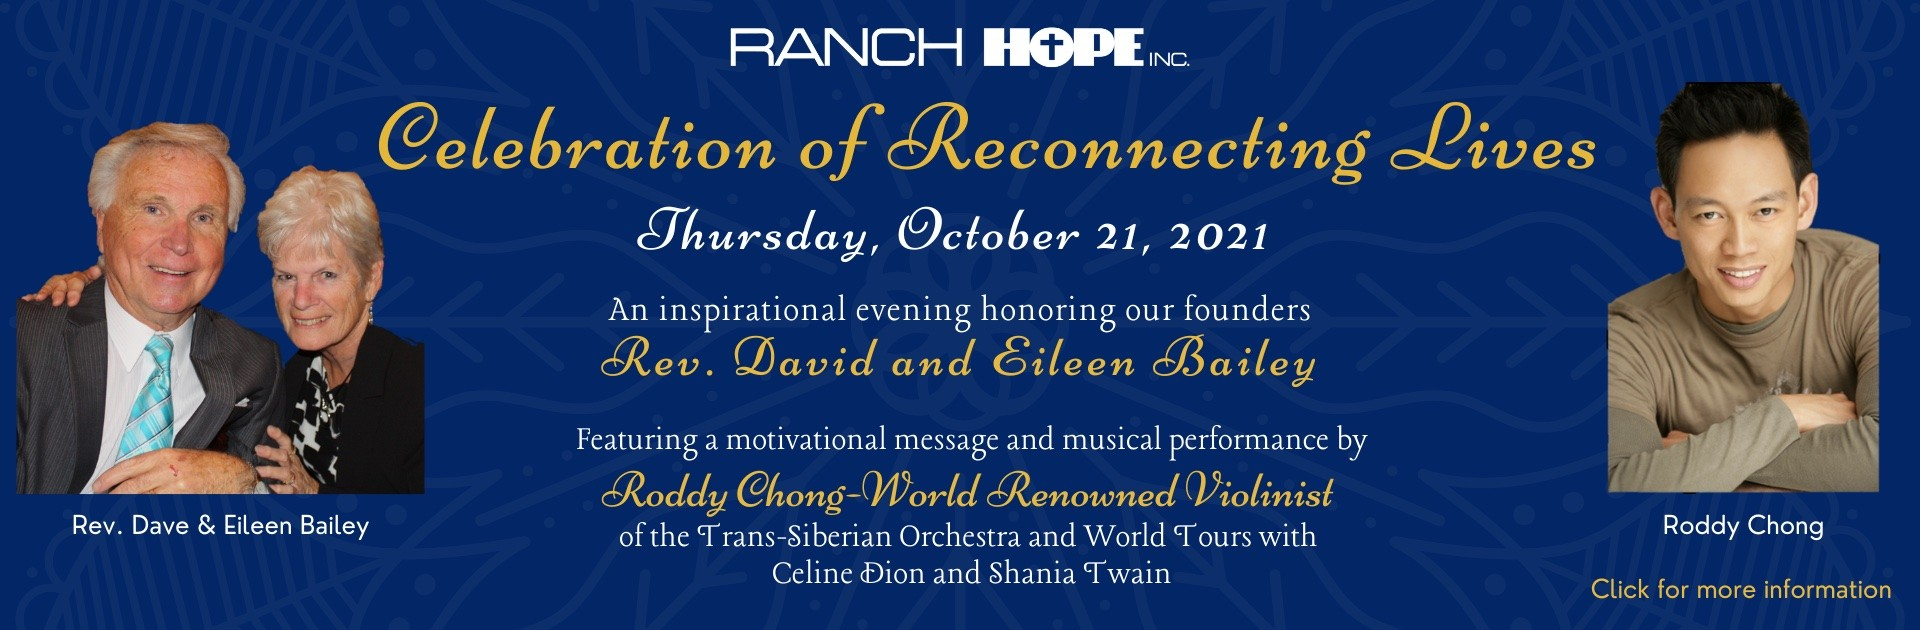 Celebration of Reconnecting Lives